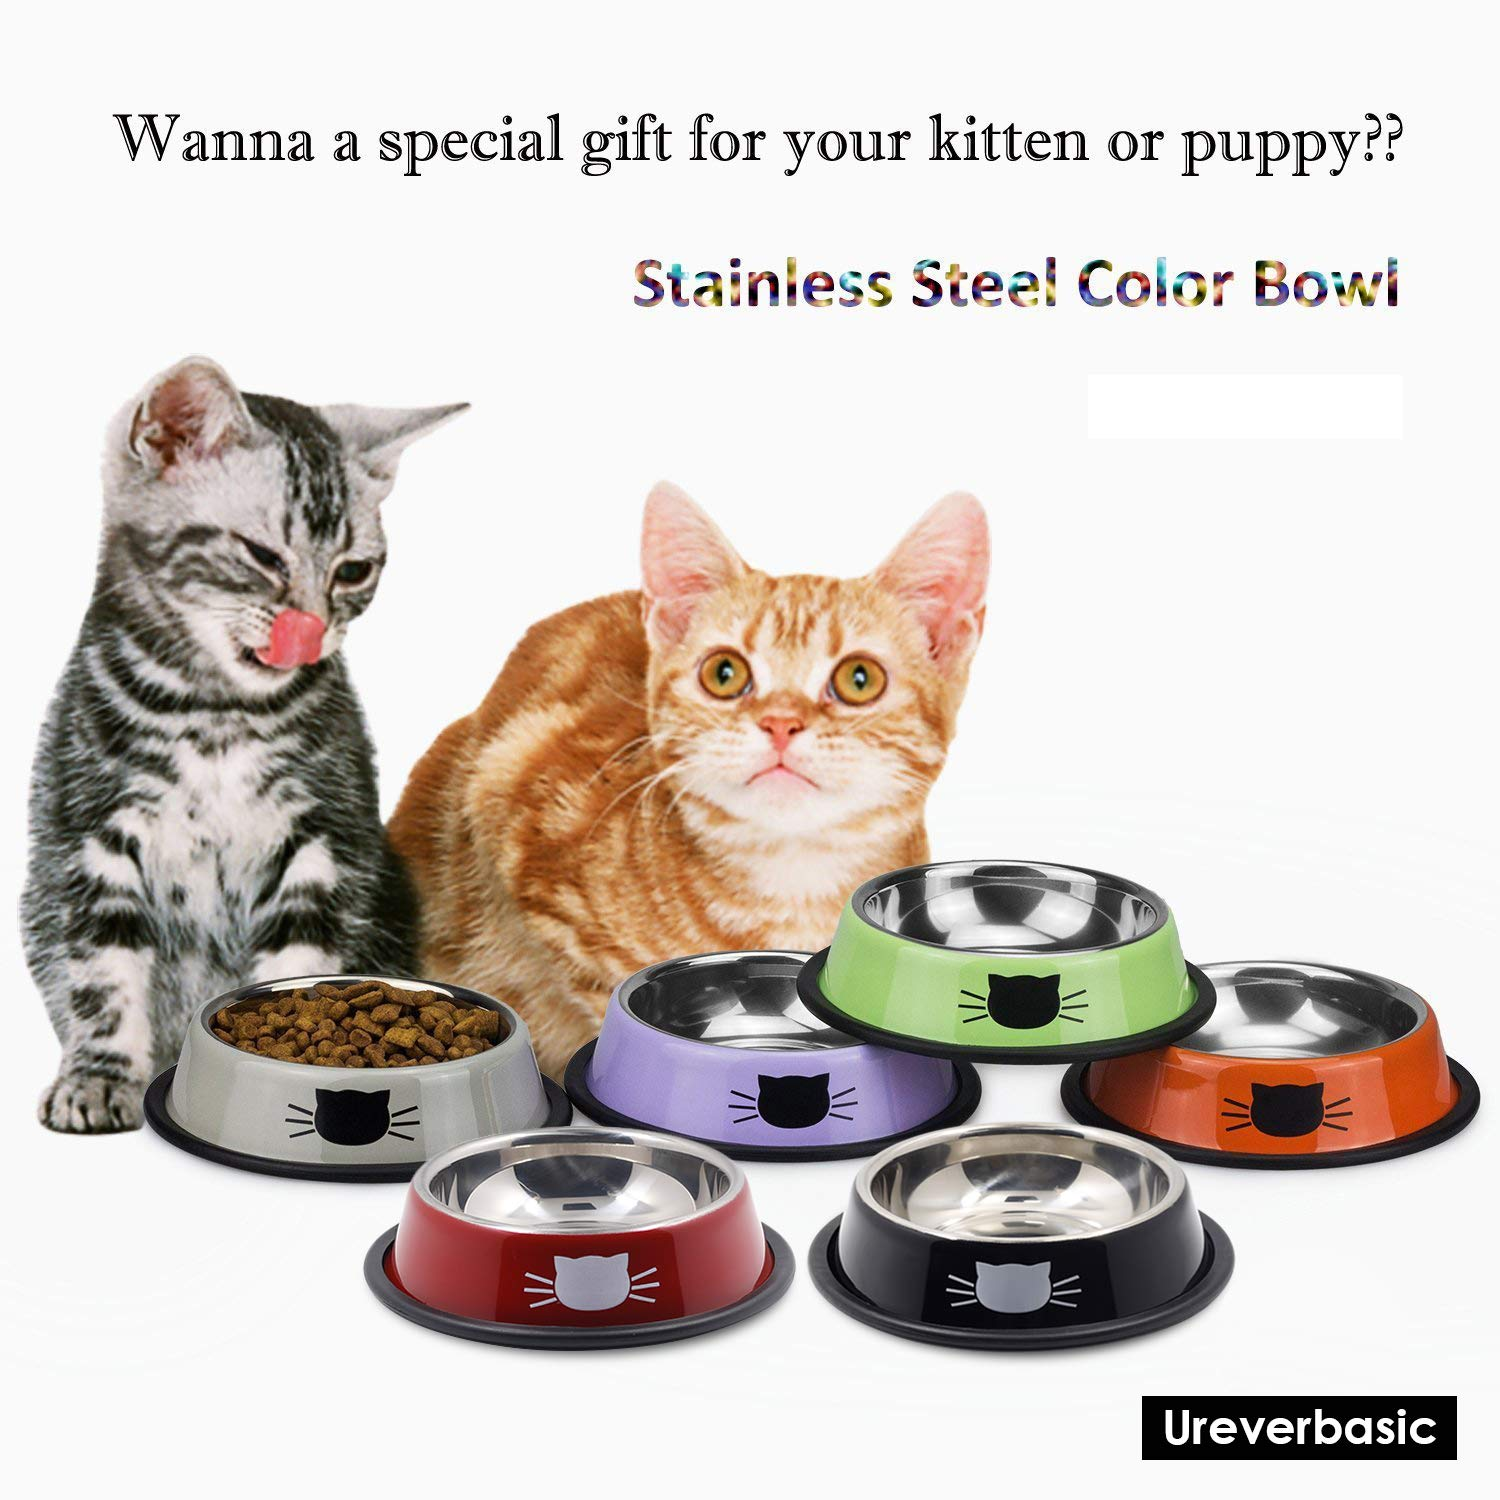 Ureverbasic Cat Bowls Stainless Steel Dog Bowl 8oz for Small Pets Puppy Kitten Rabbit Non-Skid Cat Food Bowls Easy to Clean Durable Cat Dish for Food and Water by Ureverbasic (Image #8)